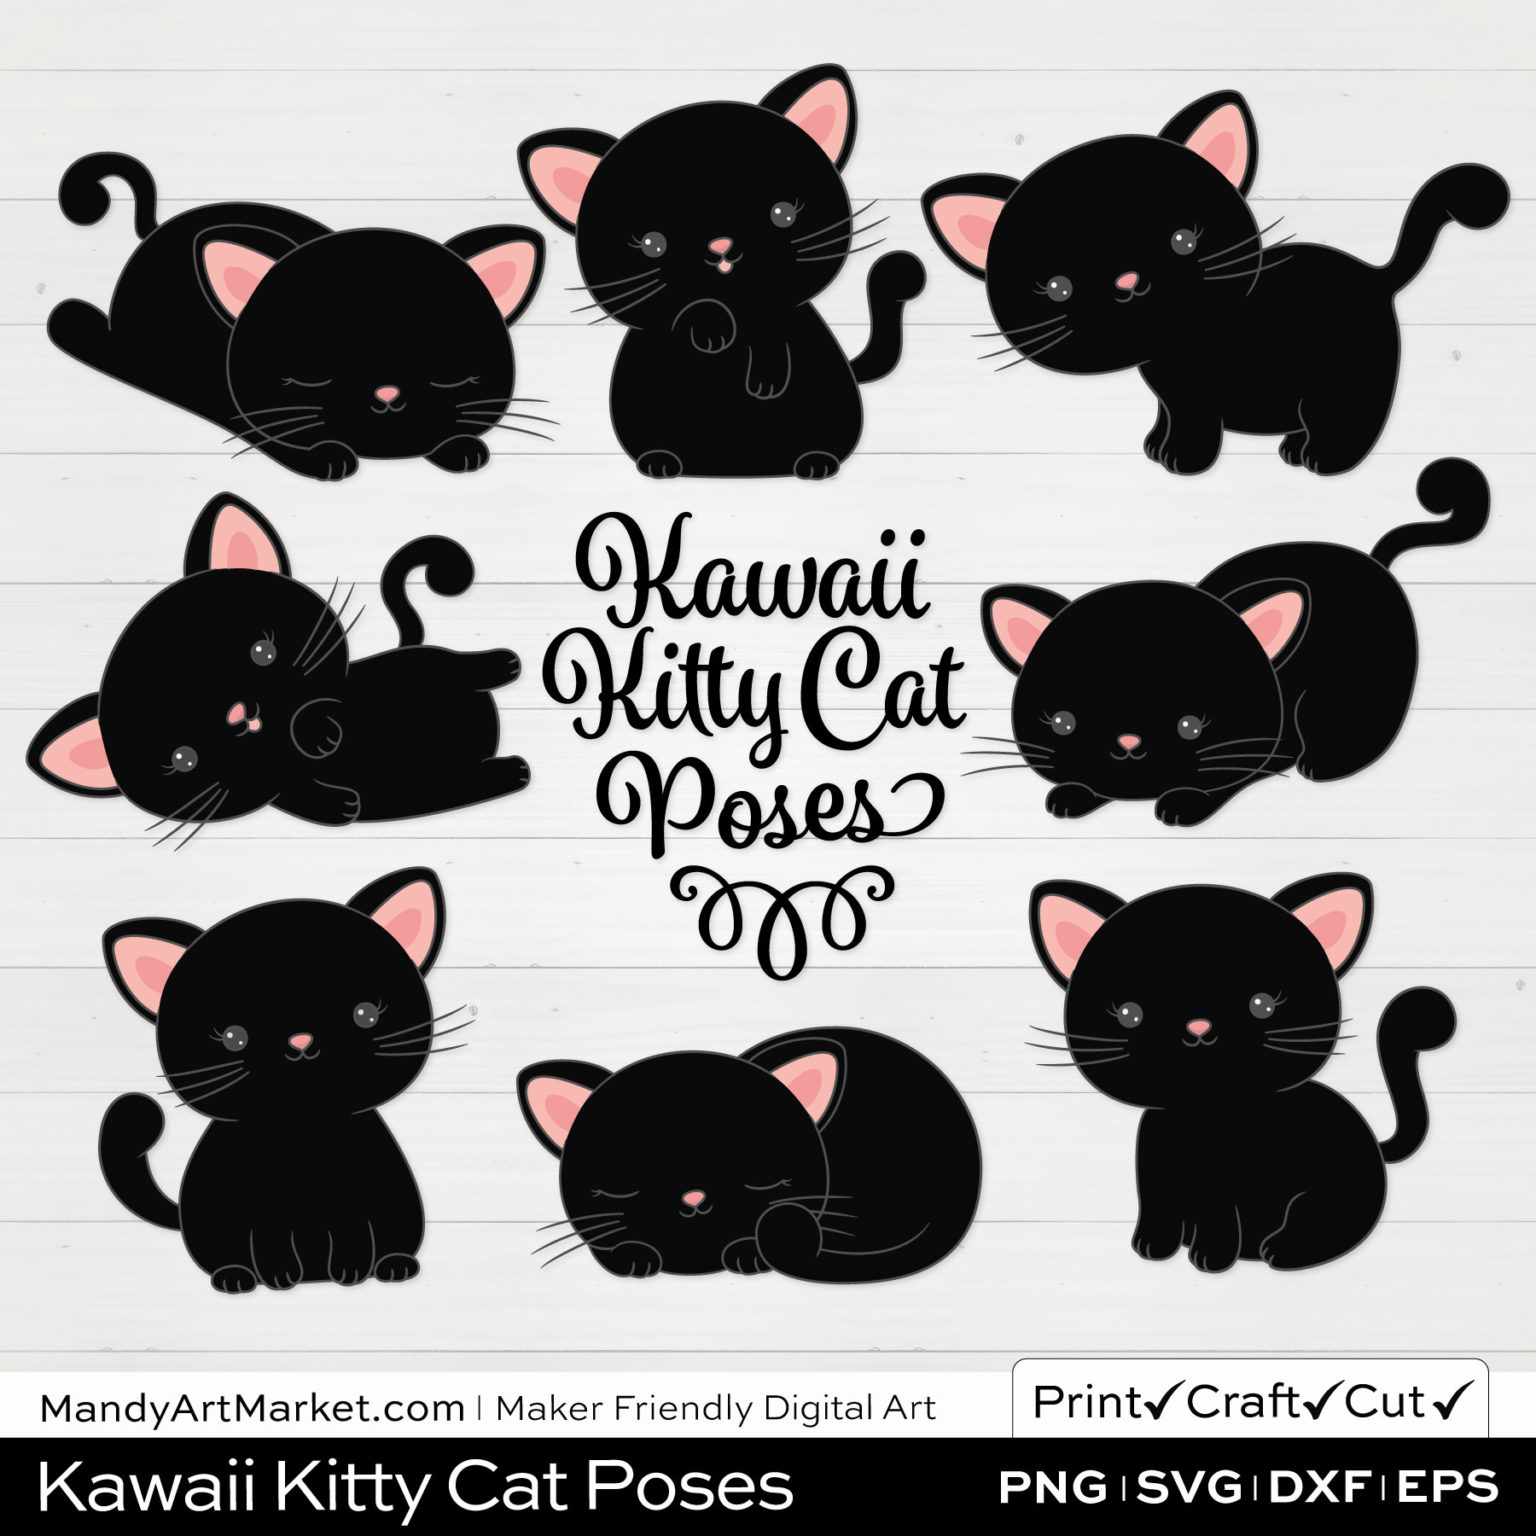 Ink Black Kawaii Kitty Cat Poses Clipart on White Background